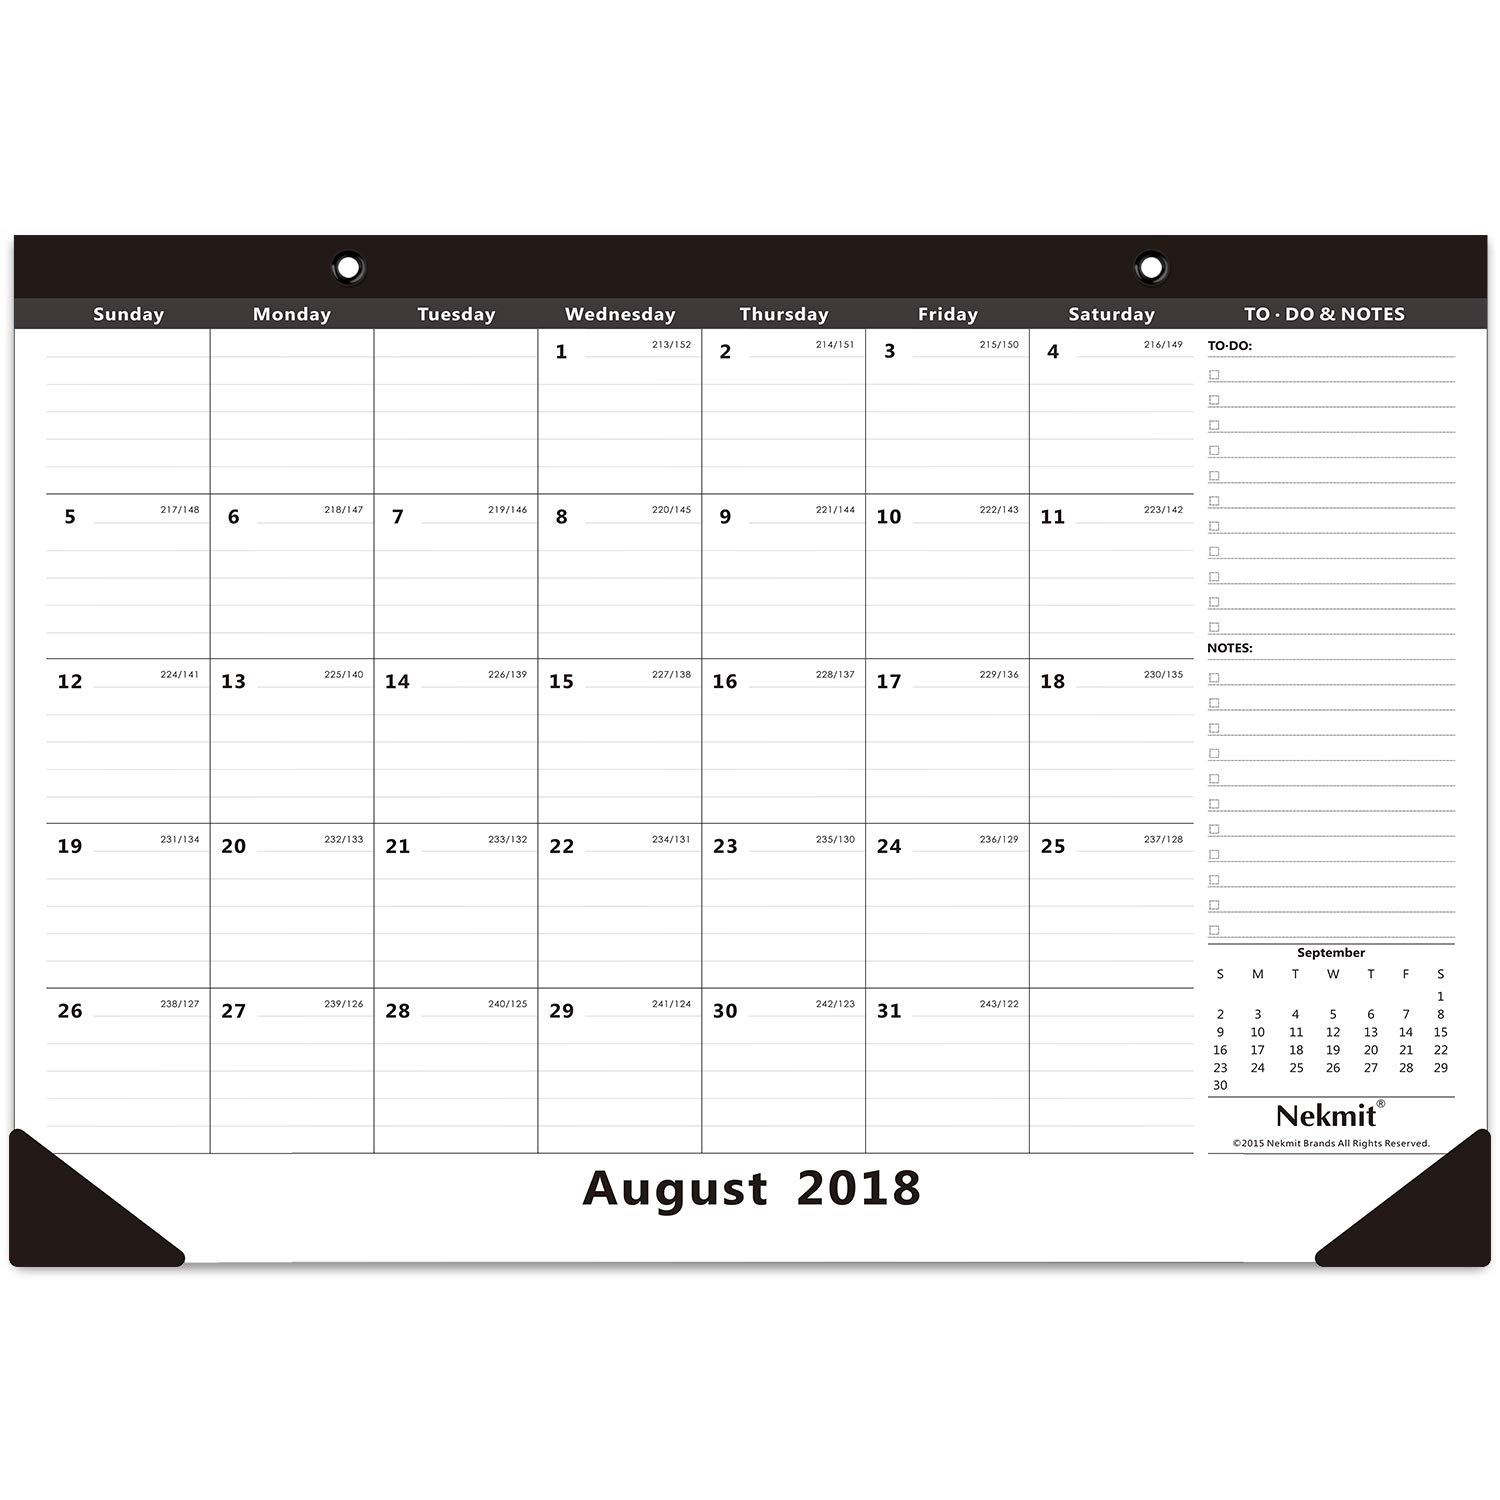 Nekmit Monthly Desk Pad Calendar, August 2018 - December 2019, 16-3/4'' x 11-4/5''